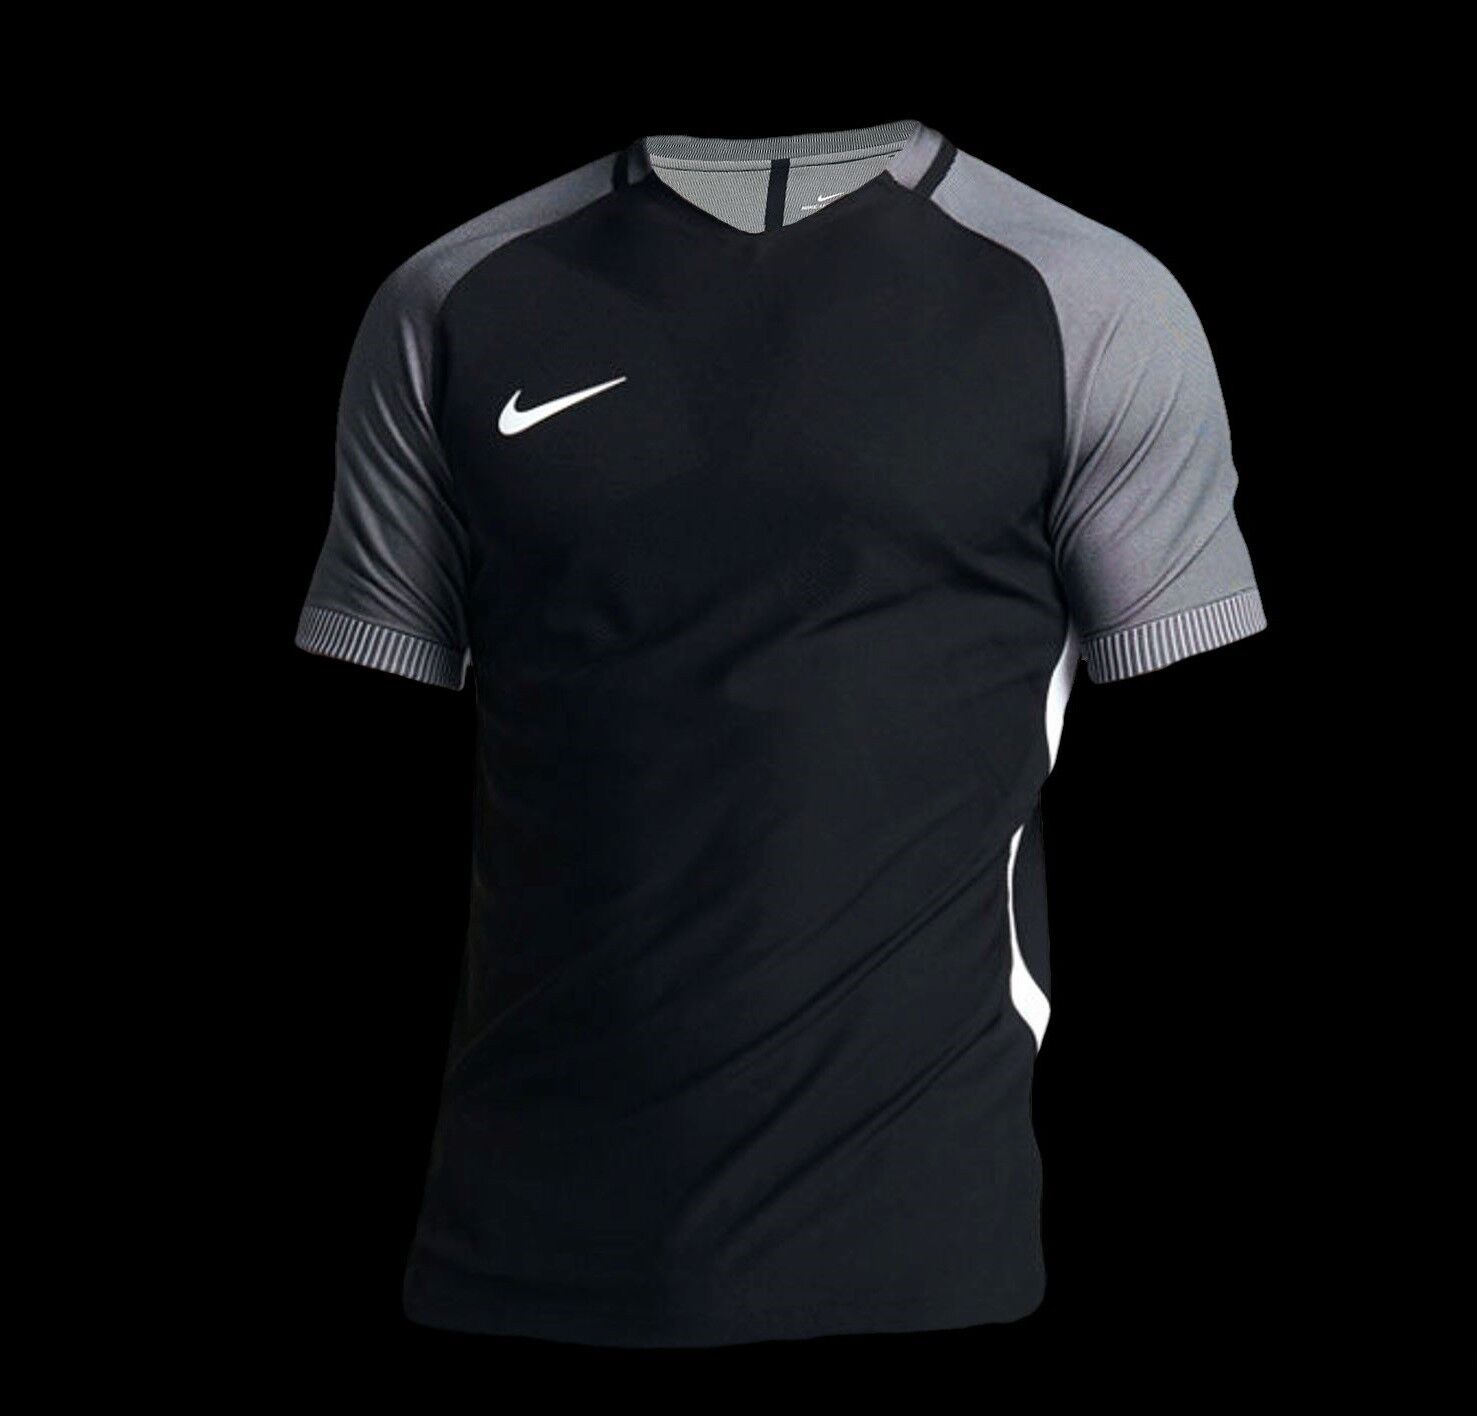 Nike Streifen Aeroswift Herren Fussball Top Model 725868-015 Msrp